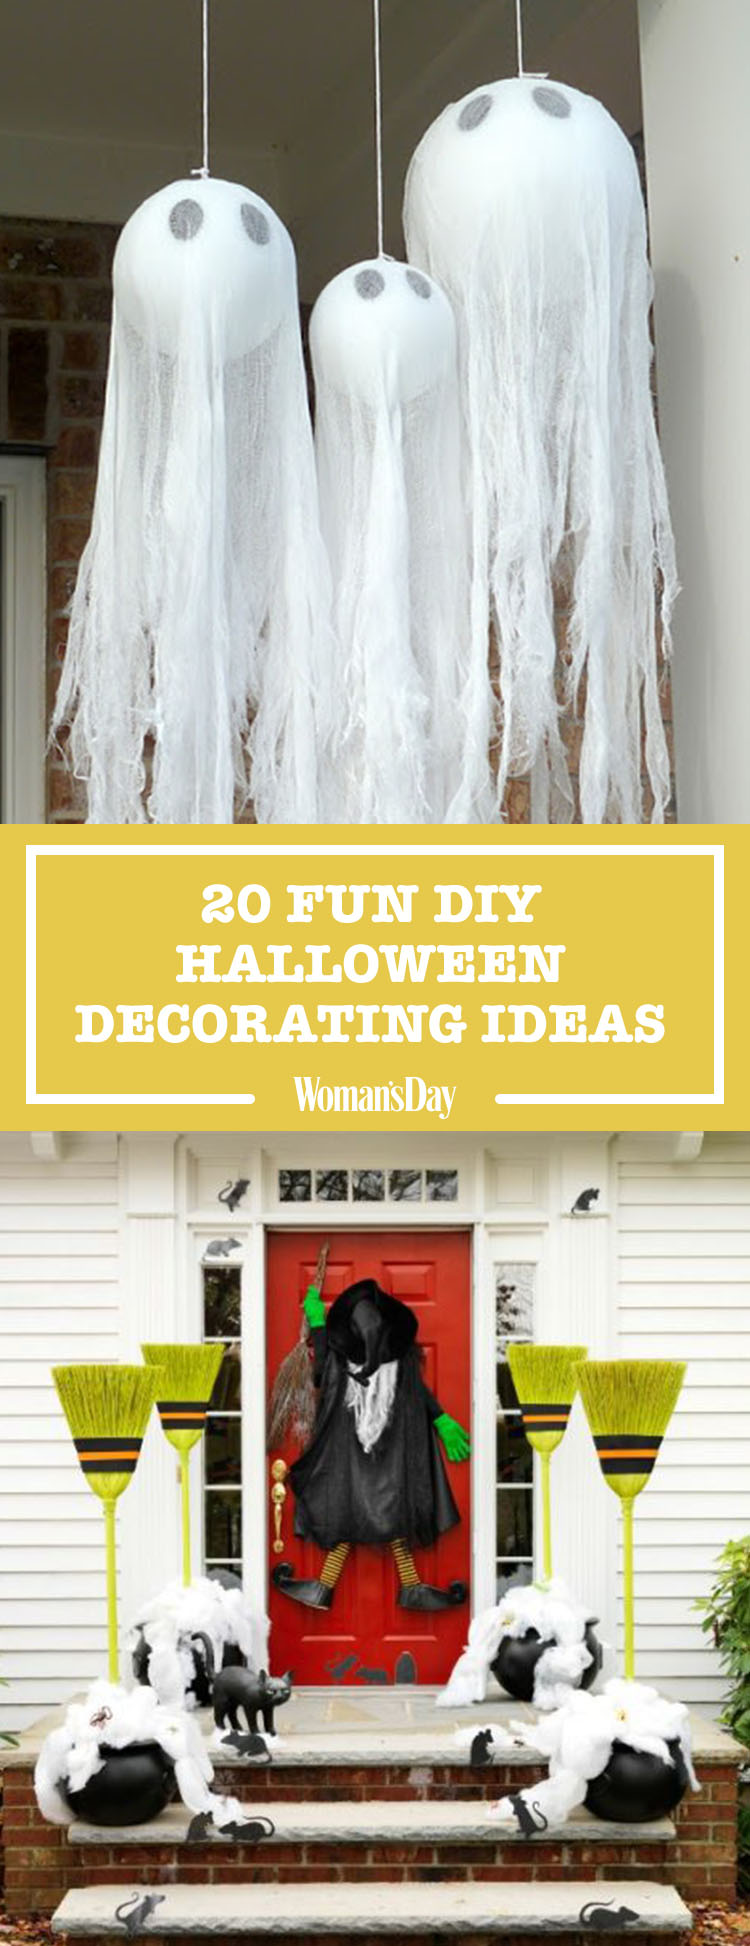 40 easy diy halloween decoration ideas homemade. Black Bedroom Furniture Sets. Home Design Ideas